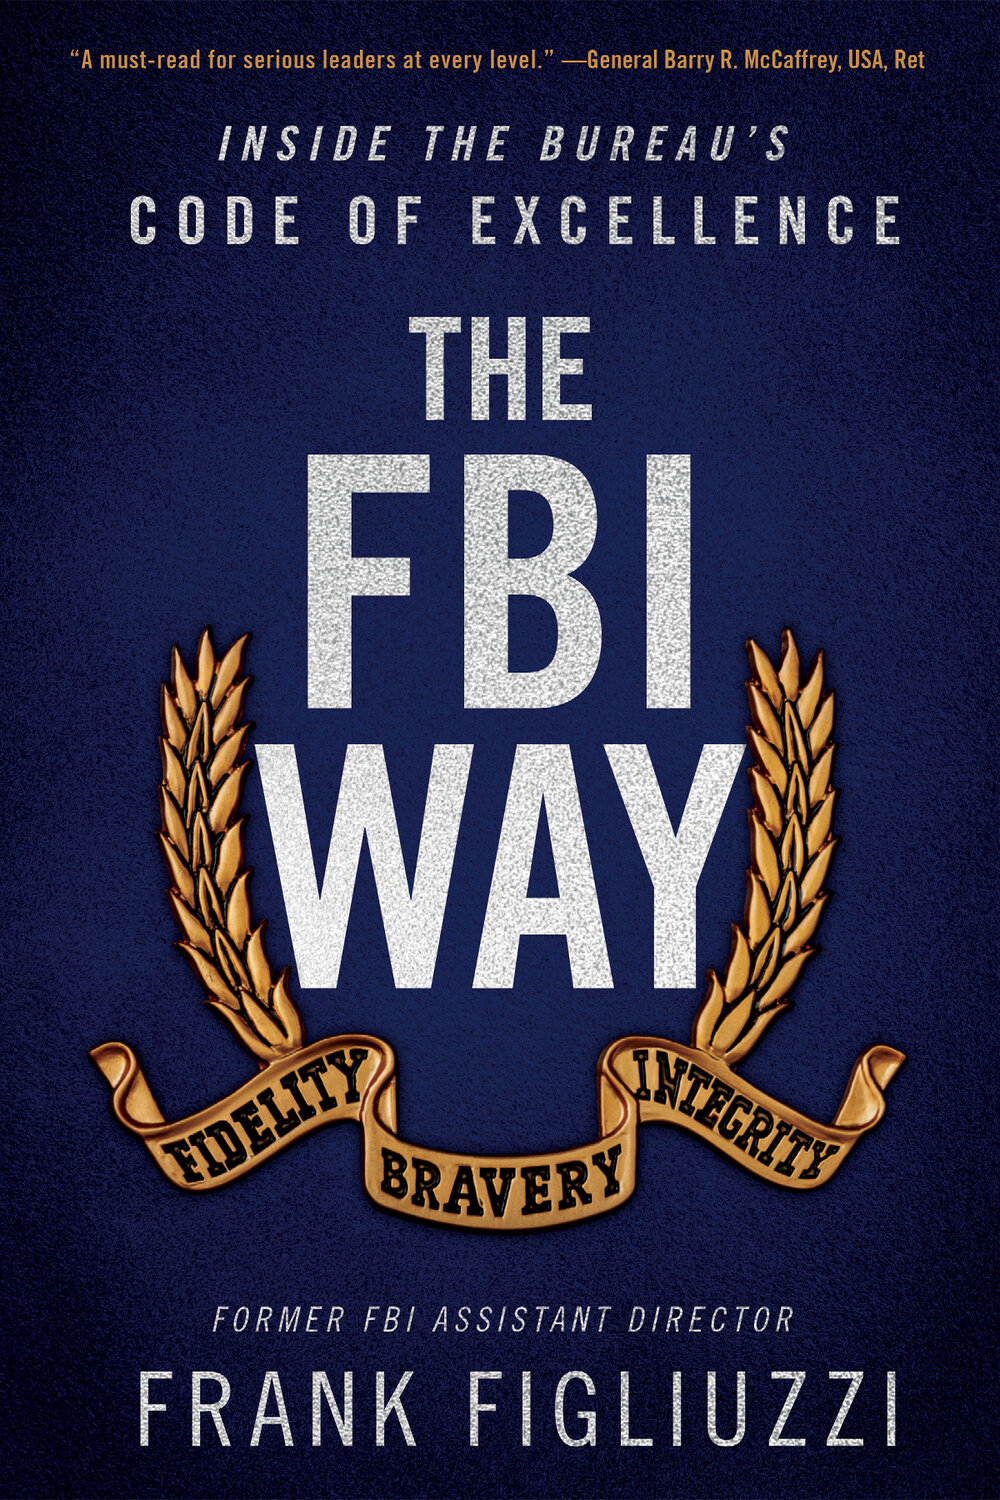 The FBI Way: Inside the Bureau's Code of Excellence by Frank Figliuzzi